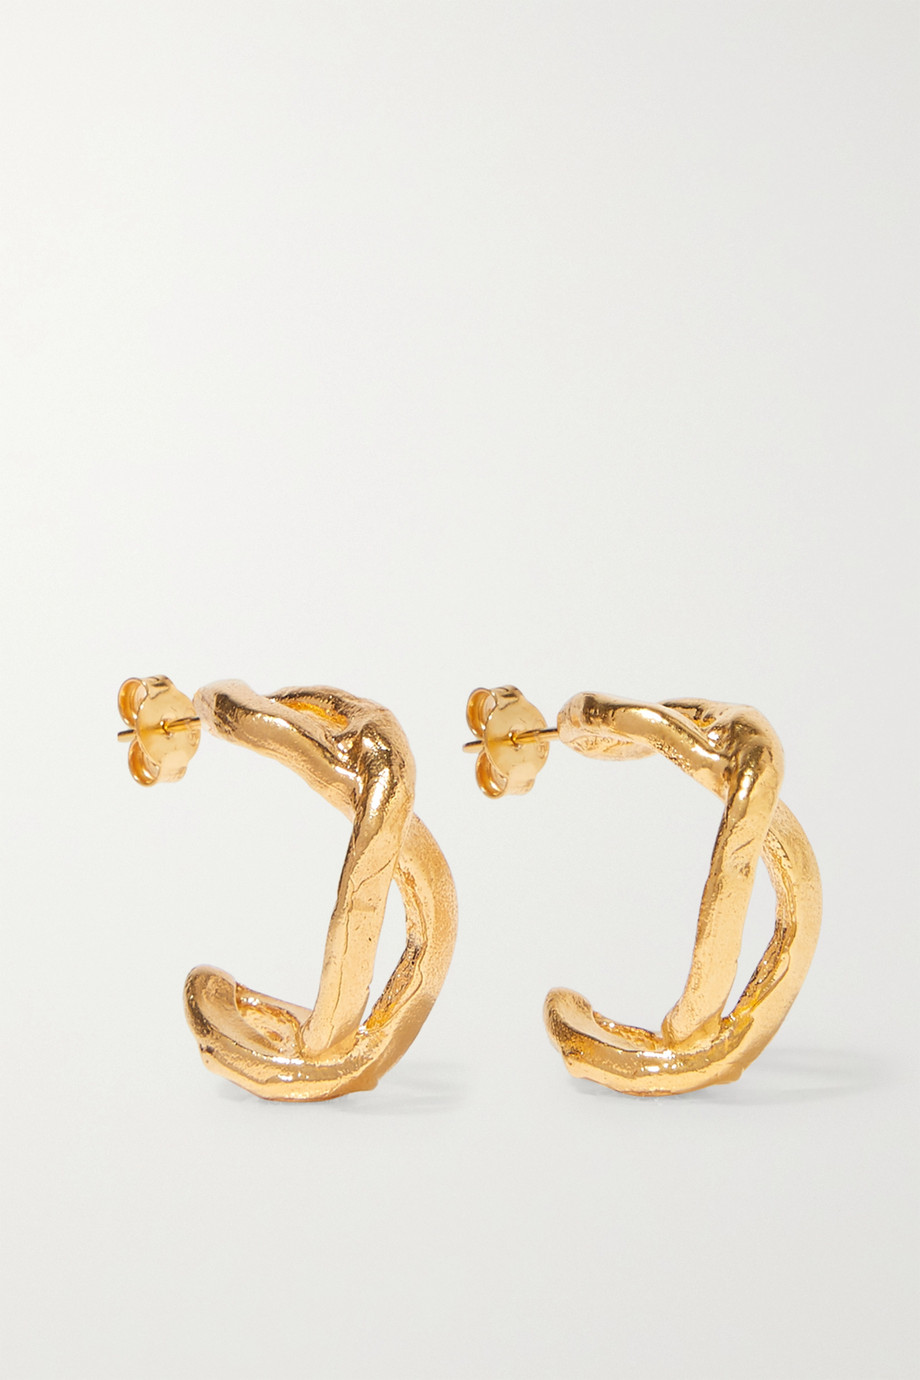 Alighieri The Orbit Of The Writer gold-plated hoop earrings